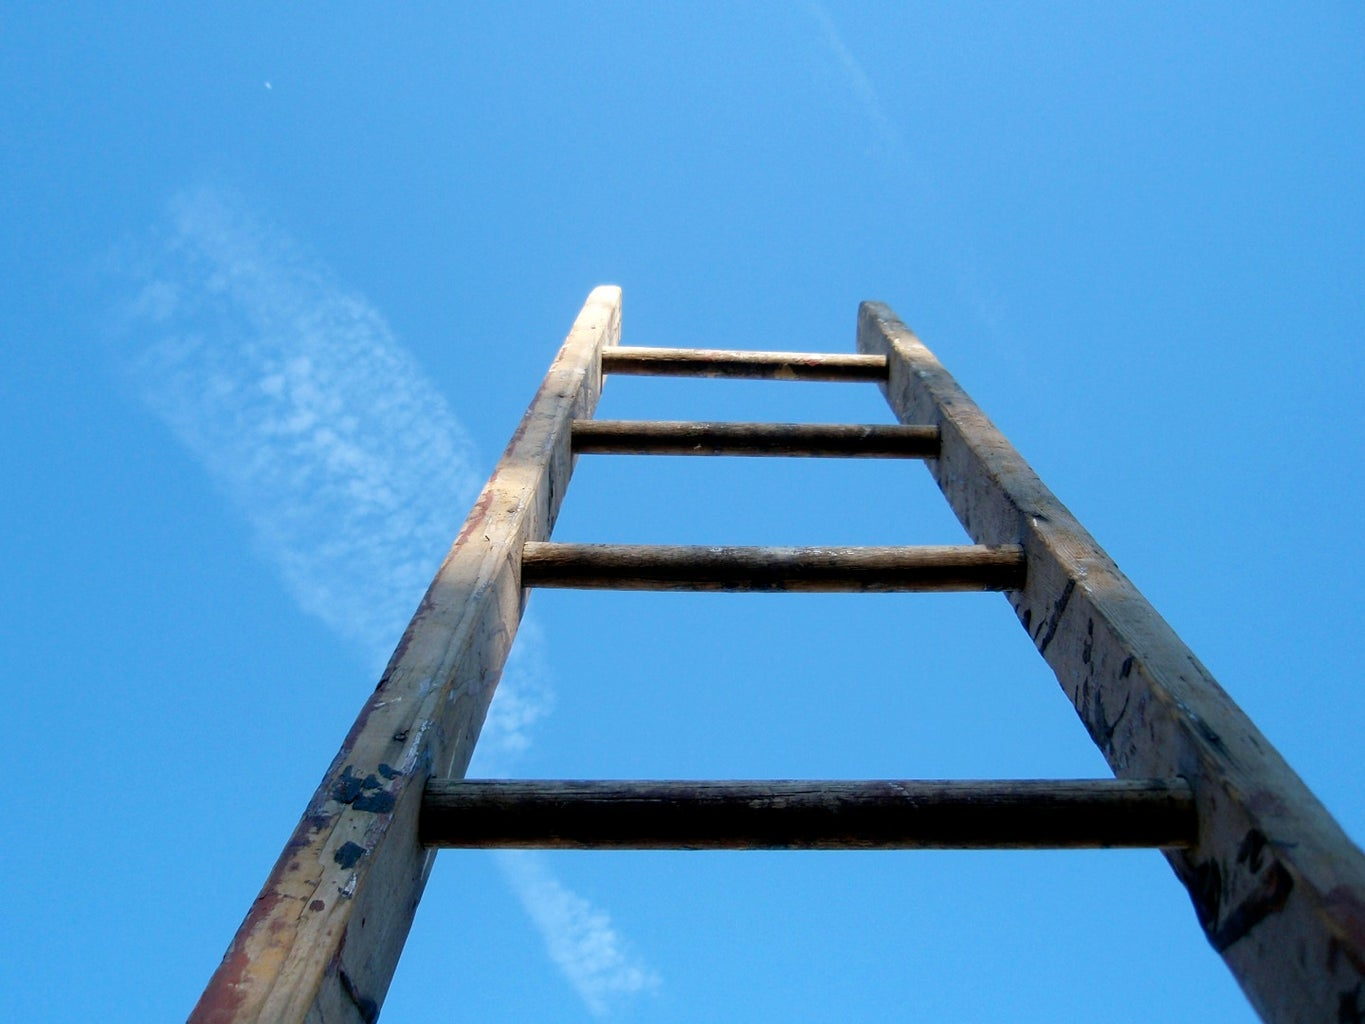 Get a Long Pole or Ladder